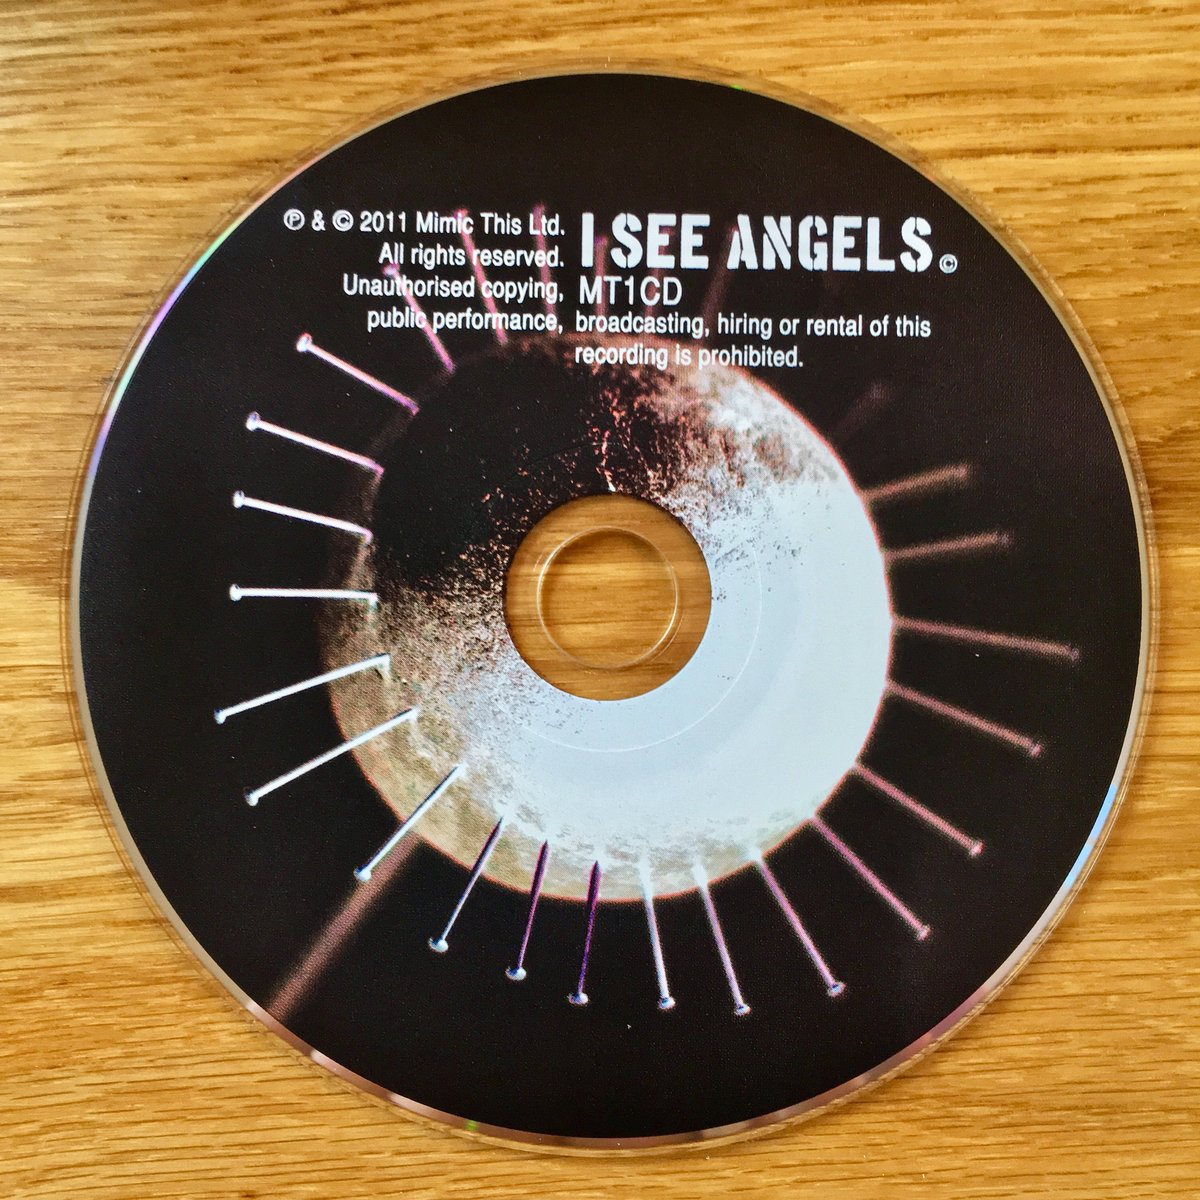 Limited Edition Compact Disc Version Of Our Debut Album. Shrink Wrapped.  Comes In A Lovely Gatefold Card Case, With Artwork Designed By Tash  Willcocks ...